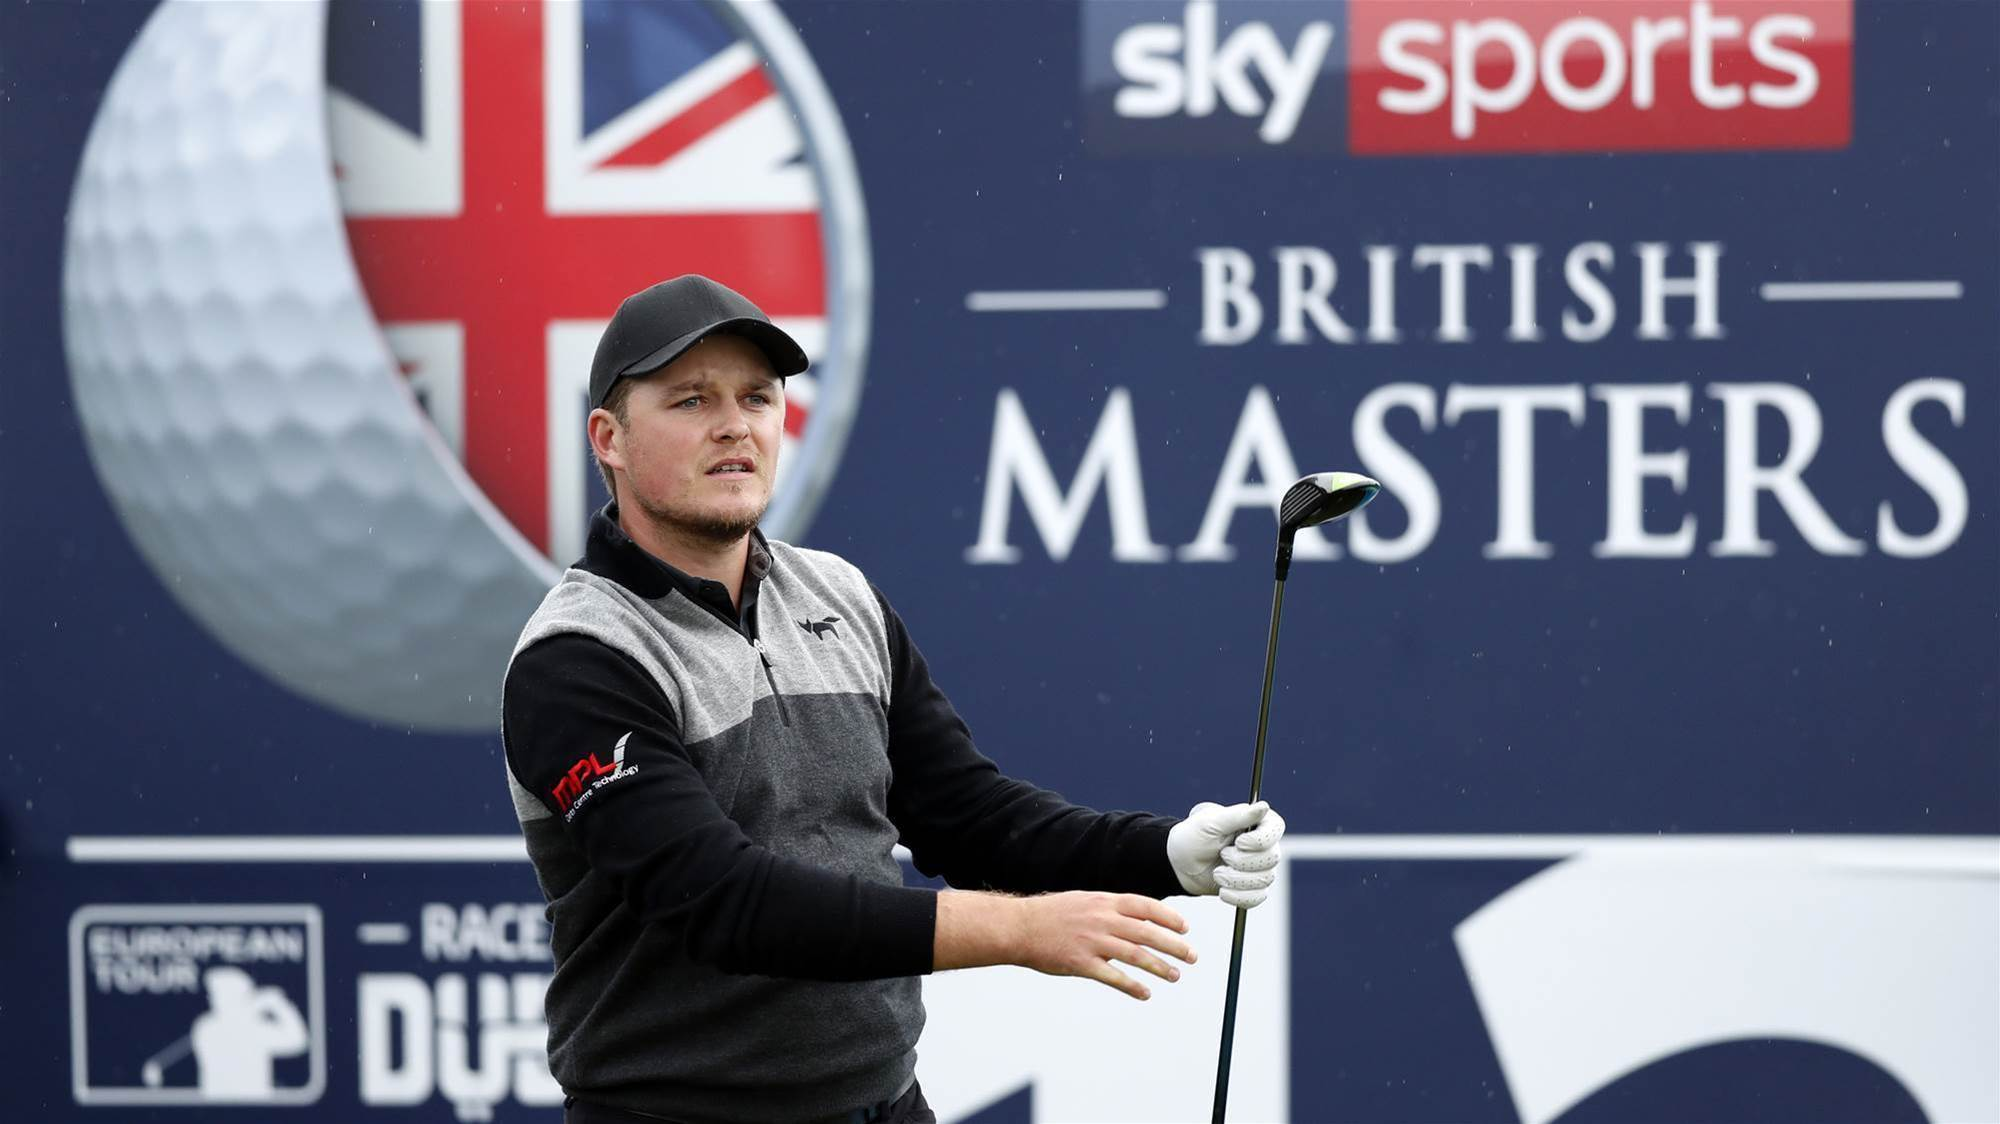 Ace hands Pepperell share of British Masters lead